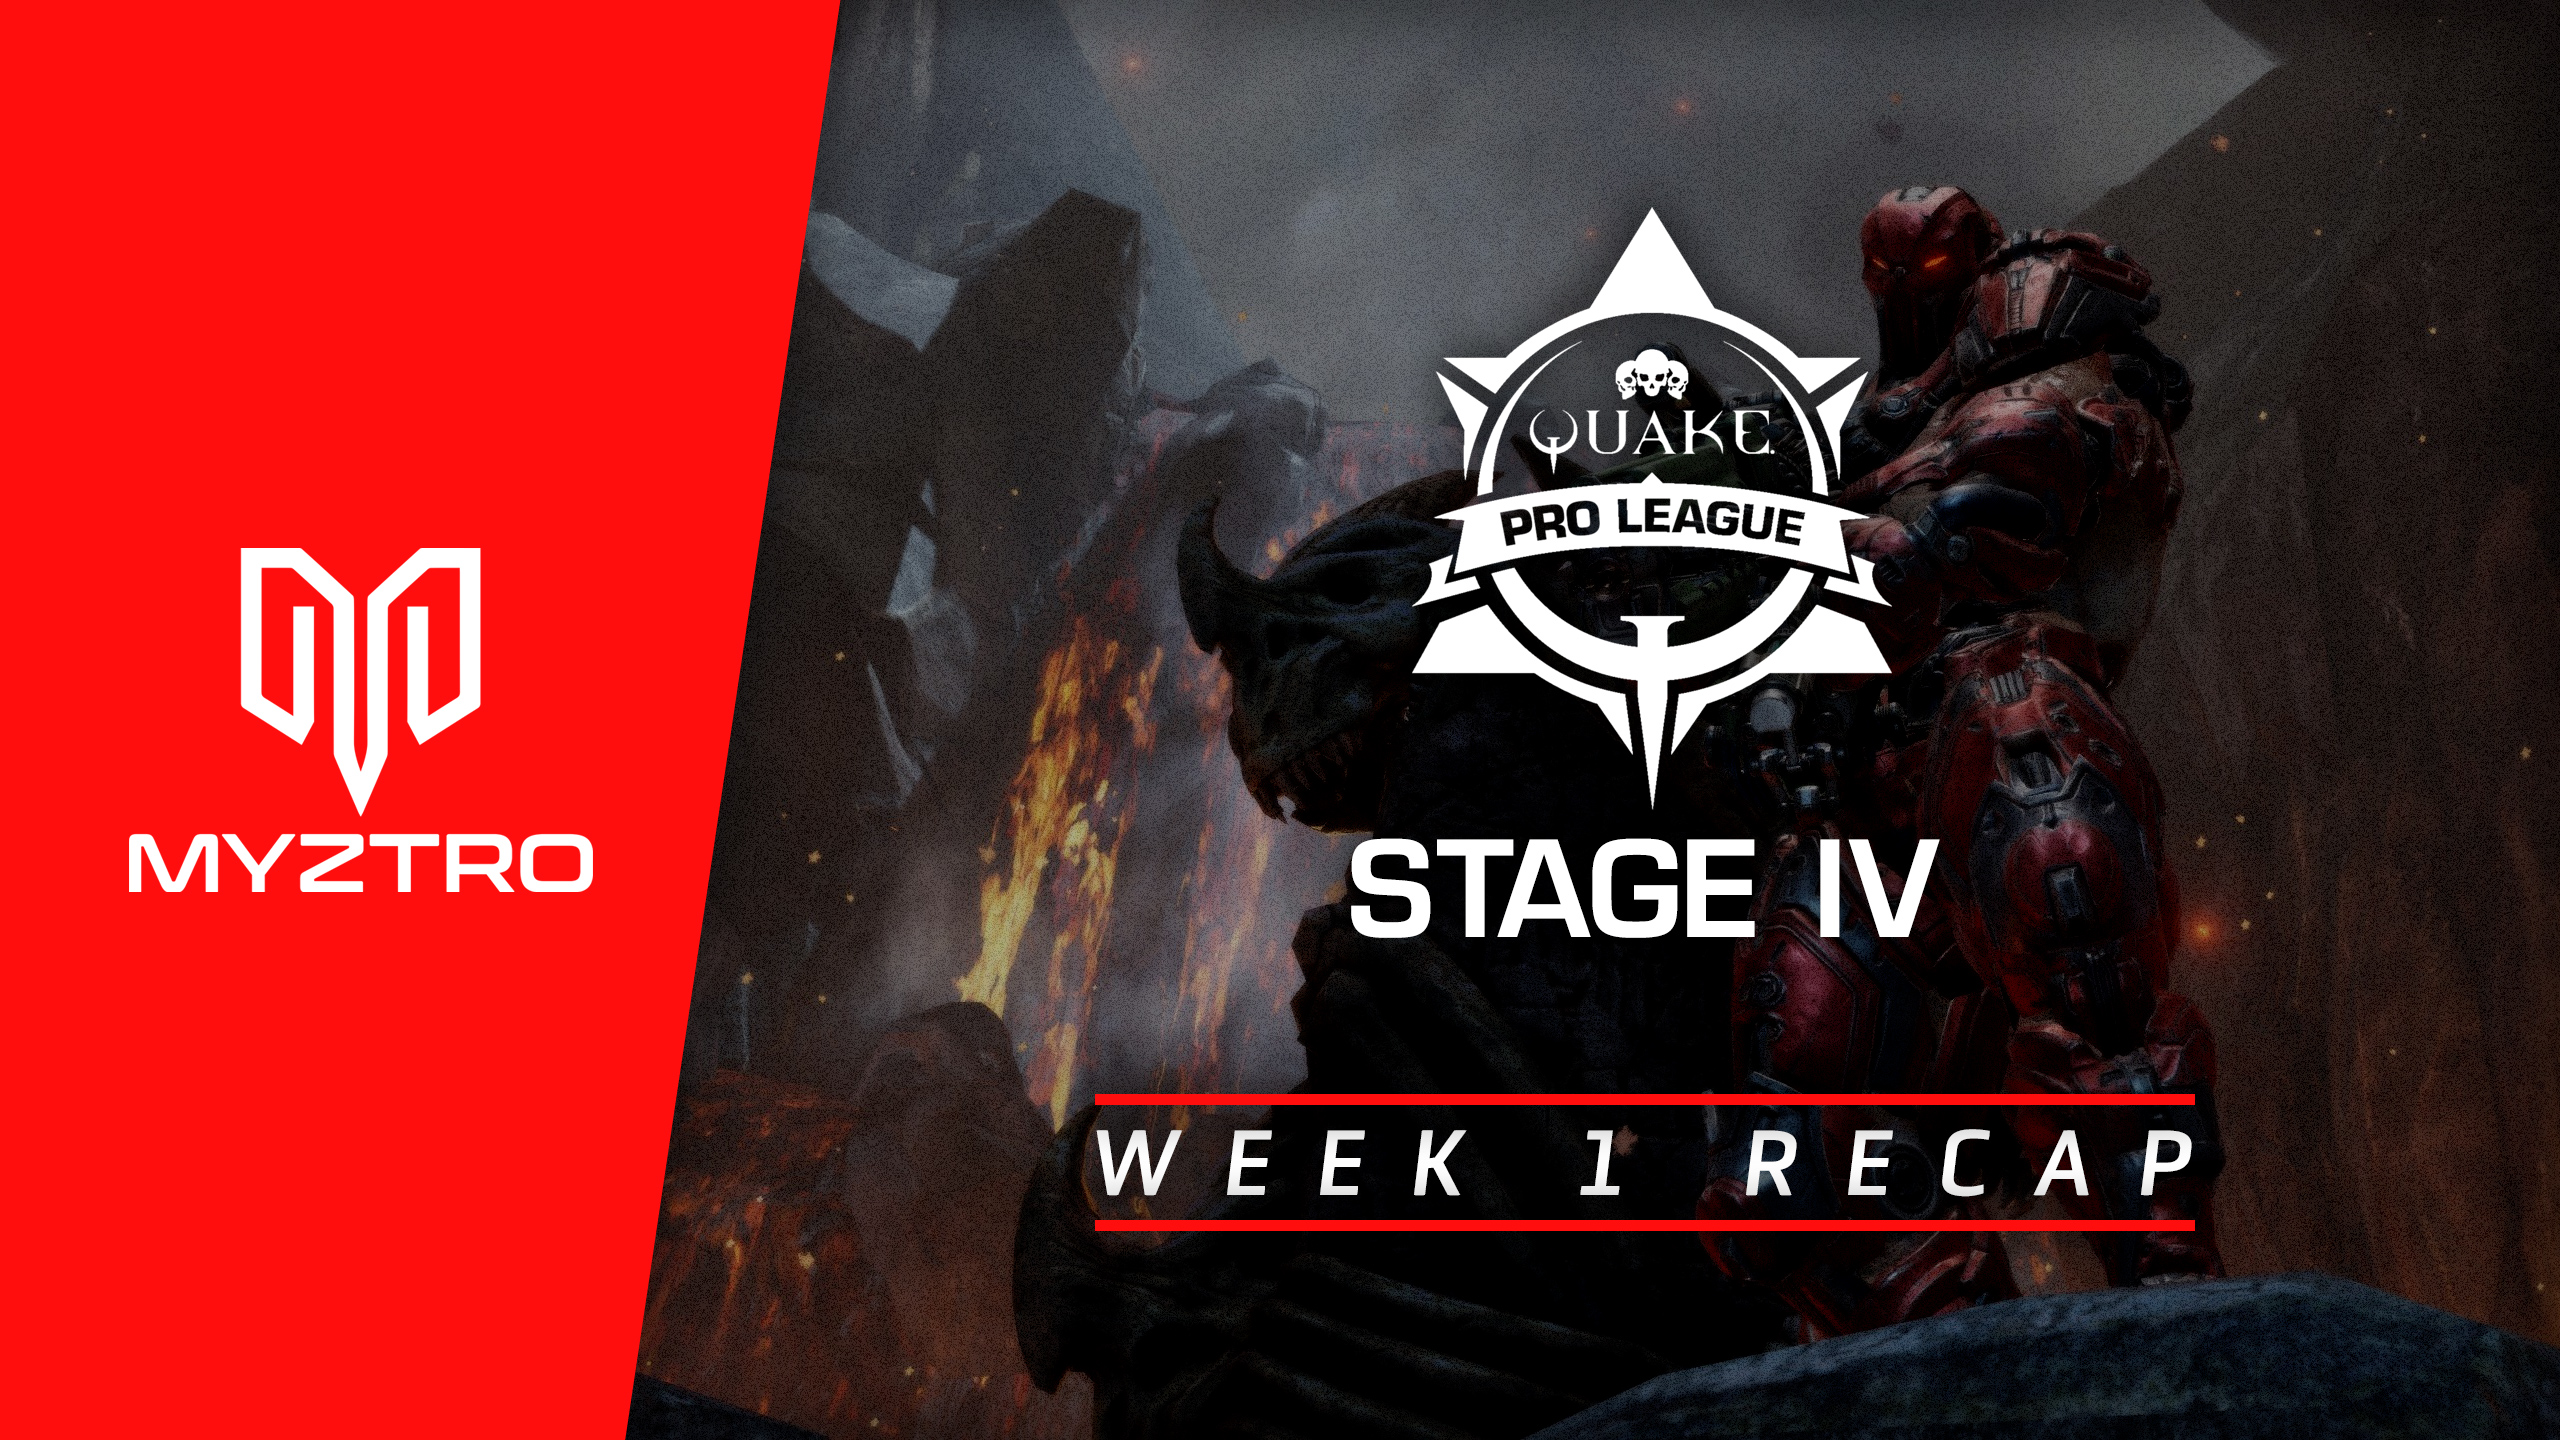 Myztro QPL Recap: Stage 4 Week 1